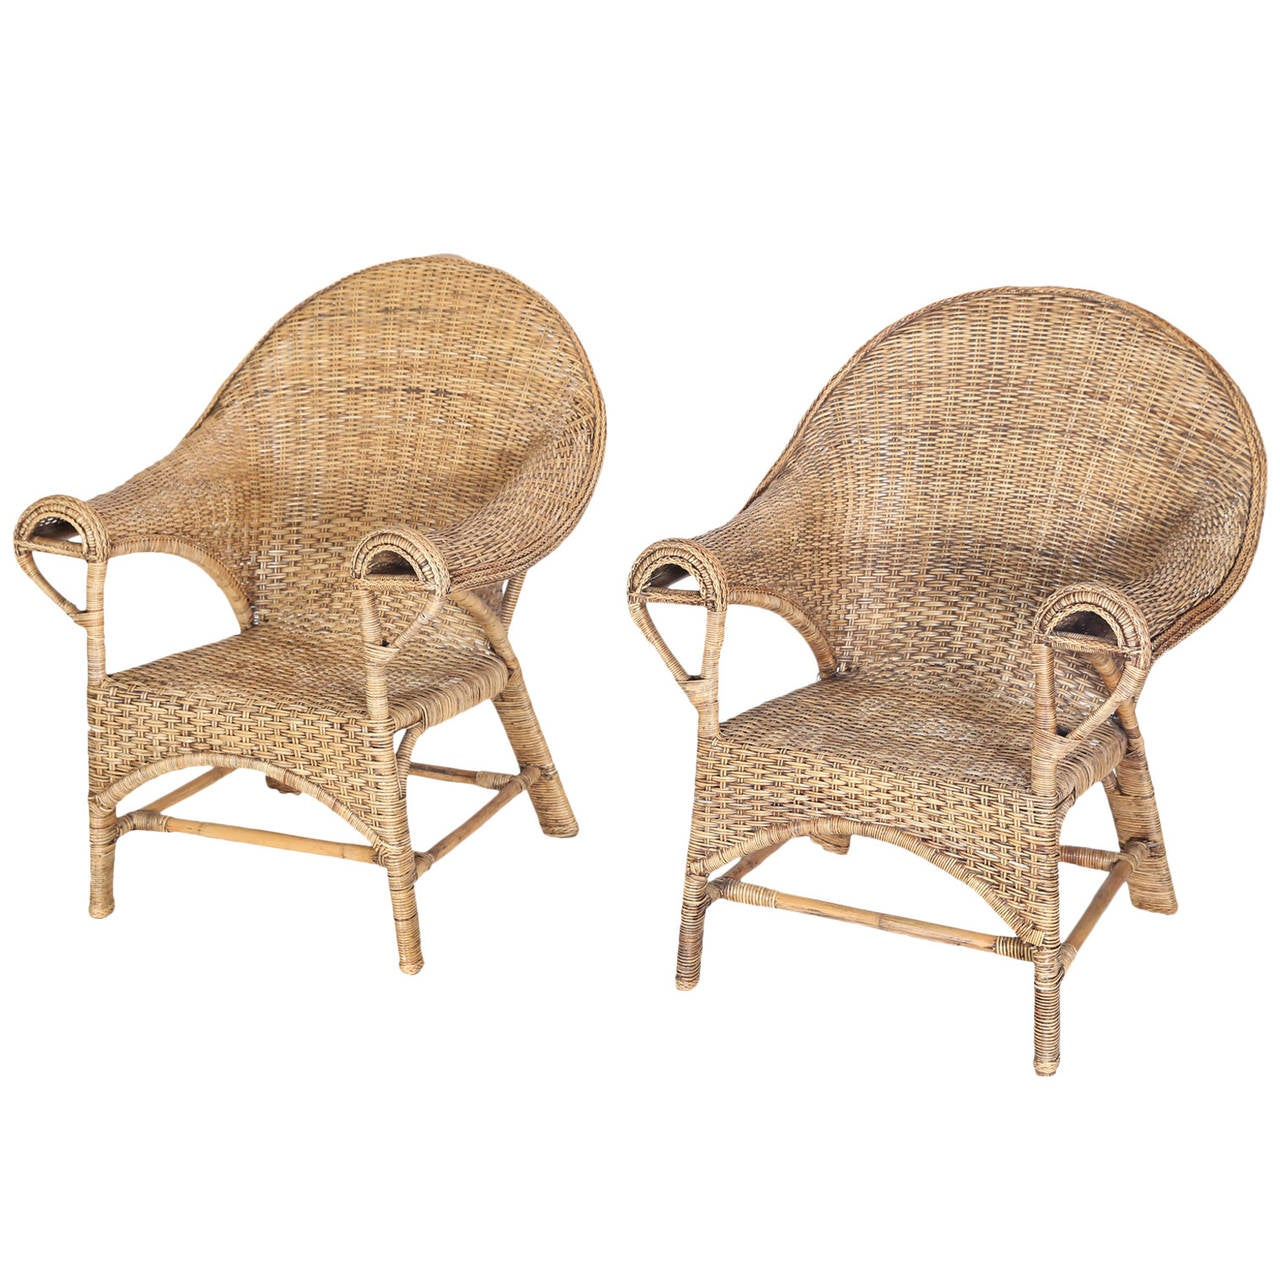 Used Cane Sofa For Sale In Bangalore: Pair Of Vintage Ginsburg Of San Francisco Wicker Chairs